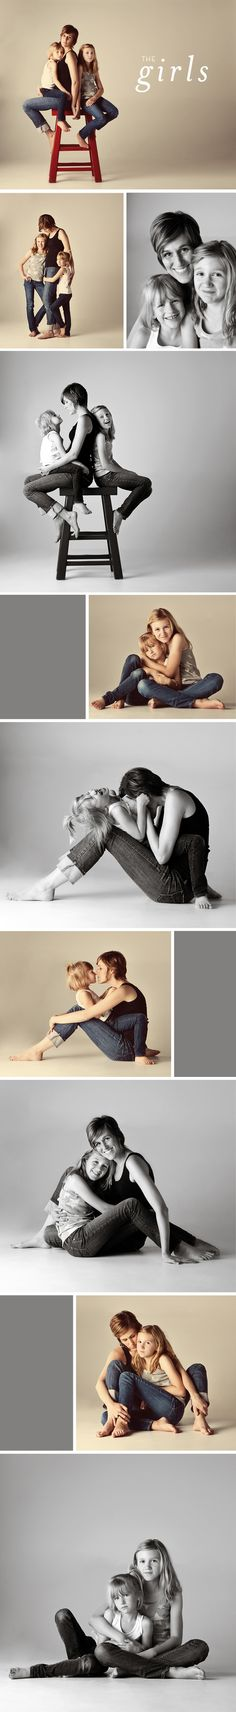 I would LOVE to have some photos like this with my girls!!!!